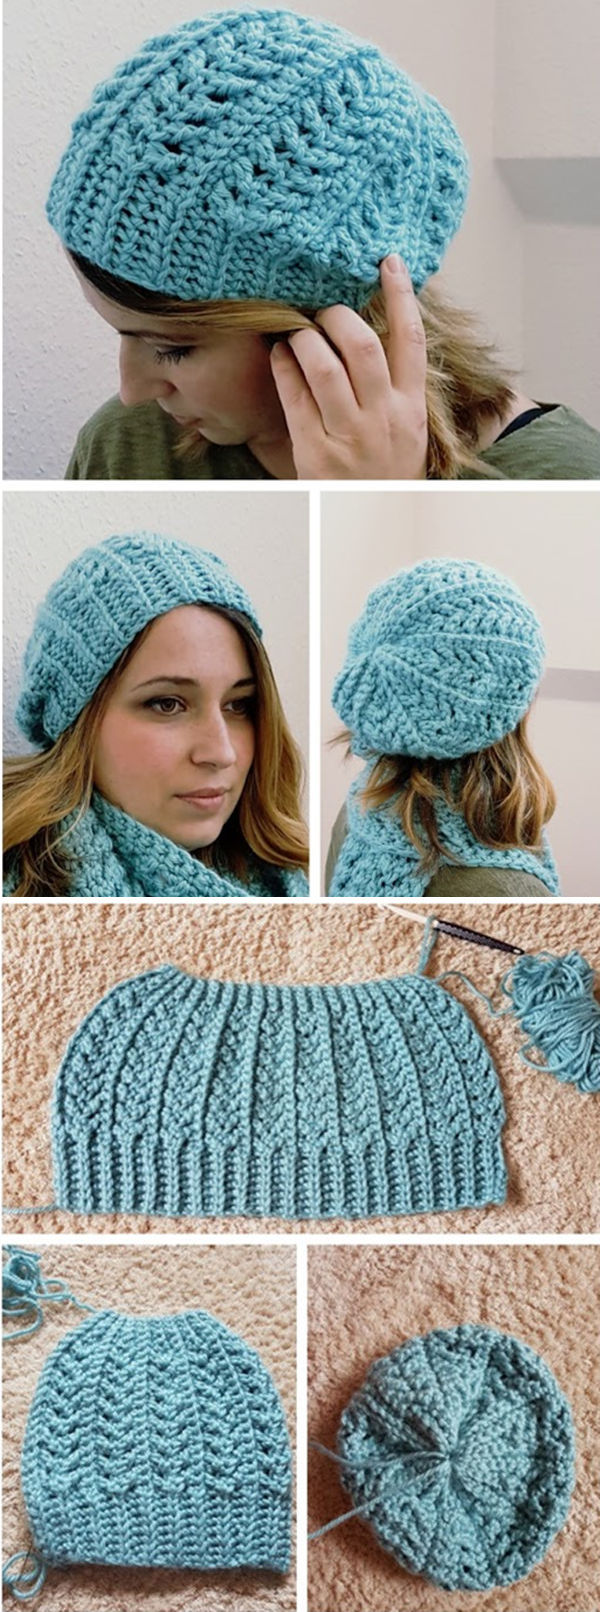 Go with the Flow Hat - Free Crochet Pattern